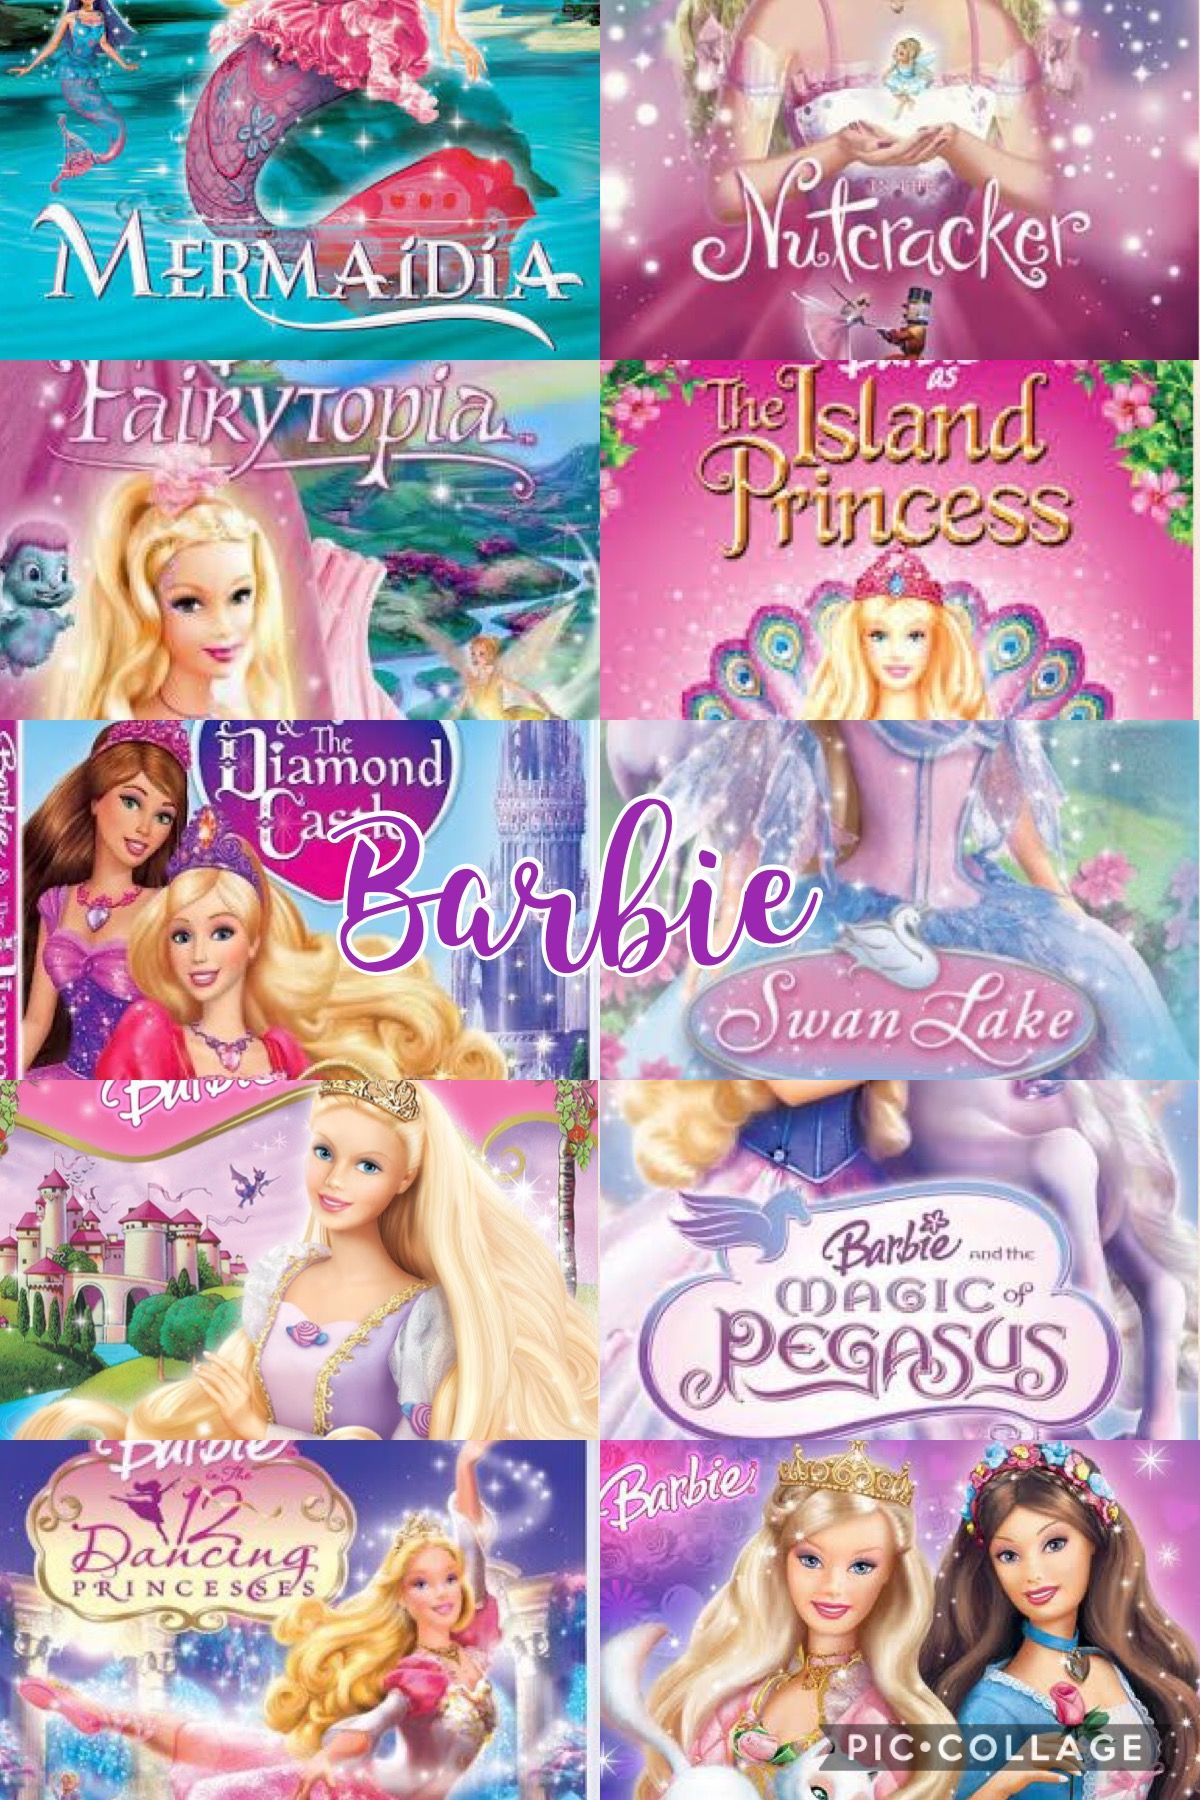 Barbie movies my top 10 number 1: princess and the pauper ...